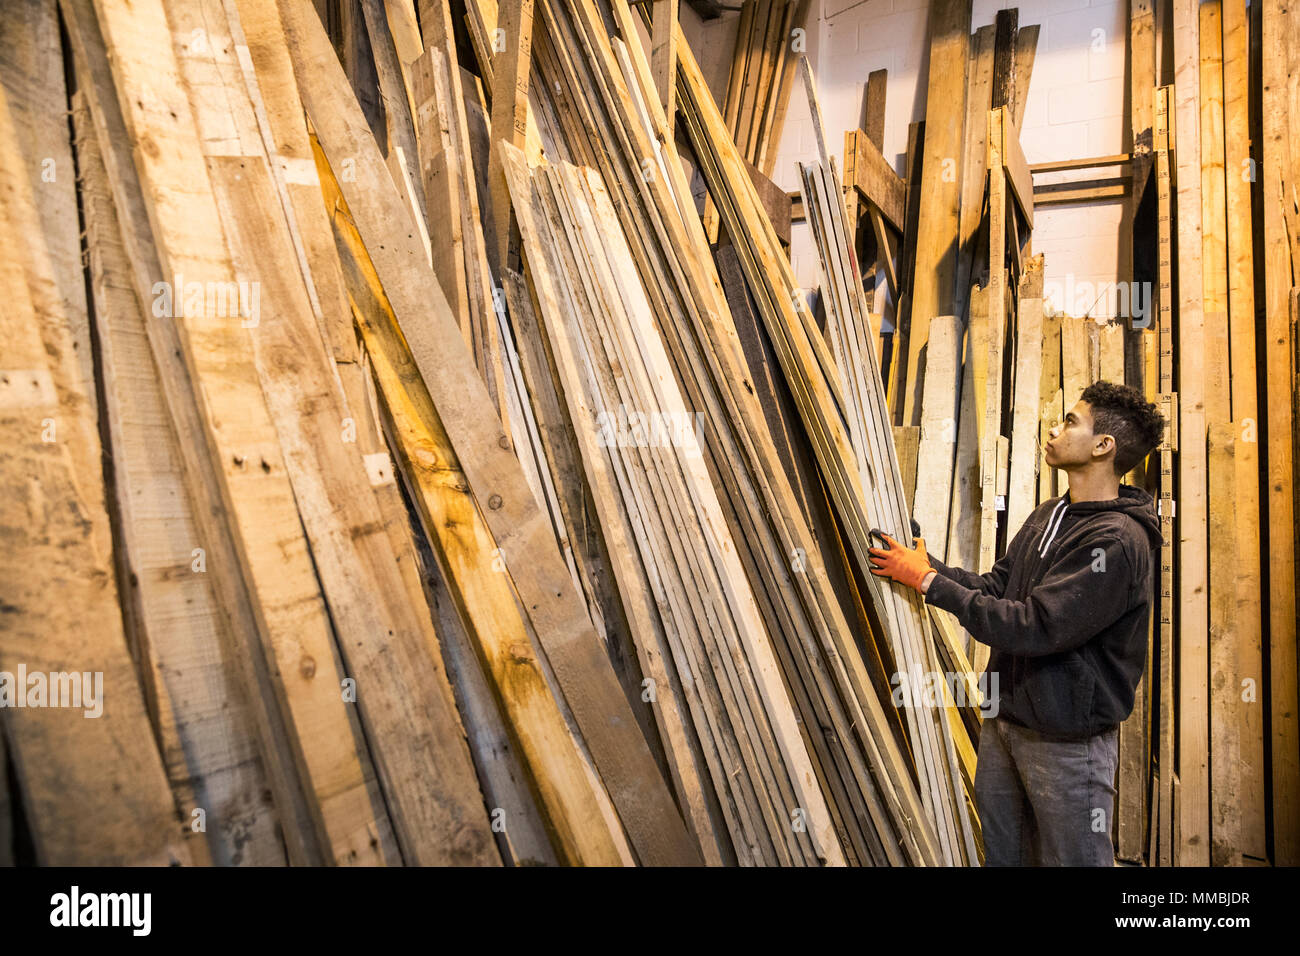 Young man wearing work gloves standing next to a stack of wooden planks in a warehouse. - Stock Image